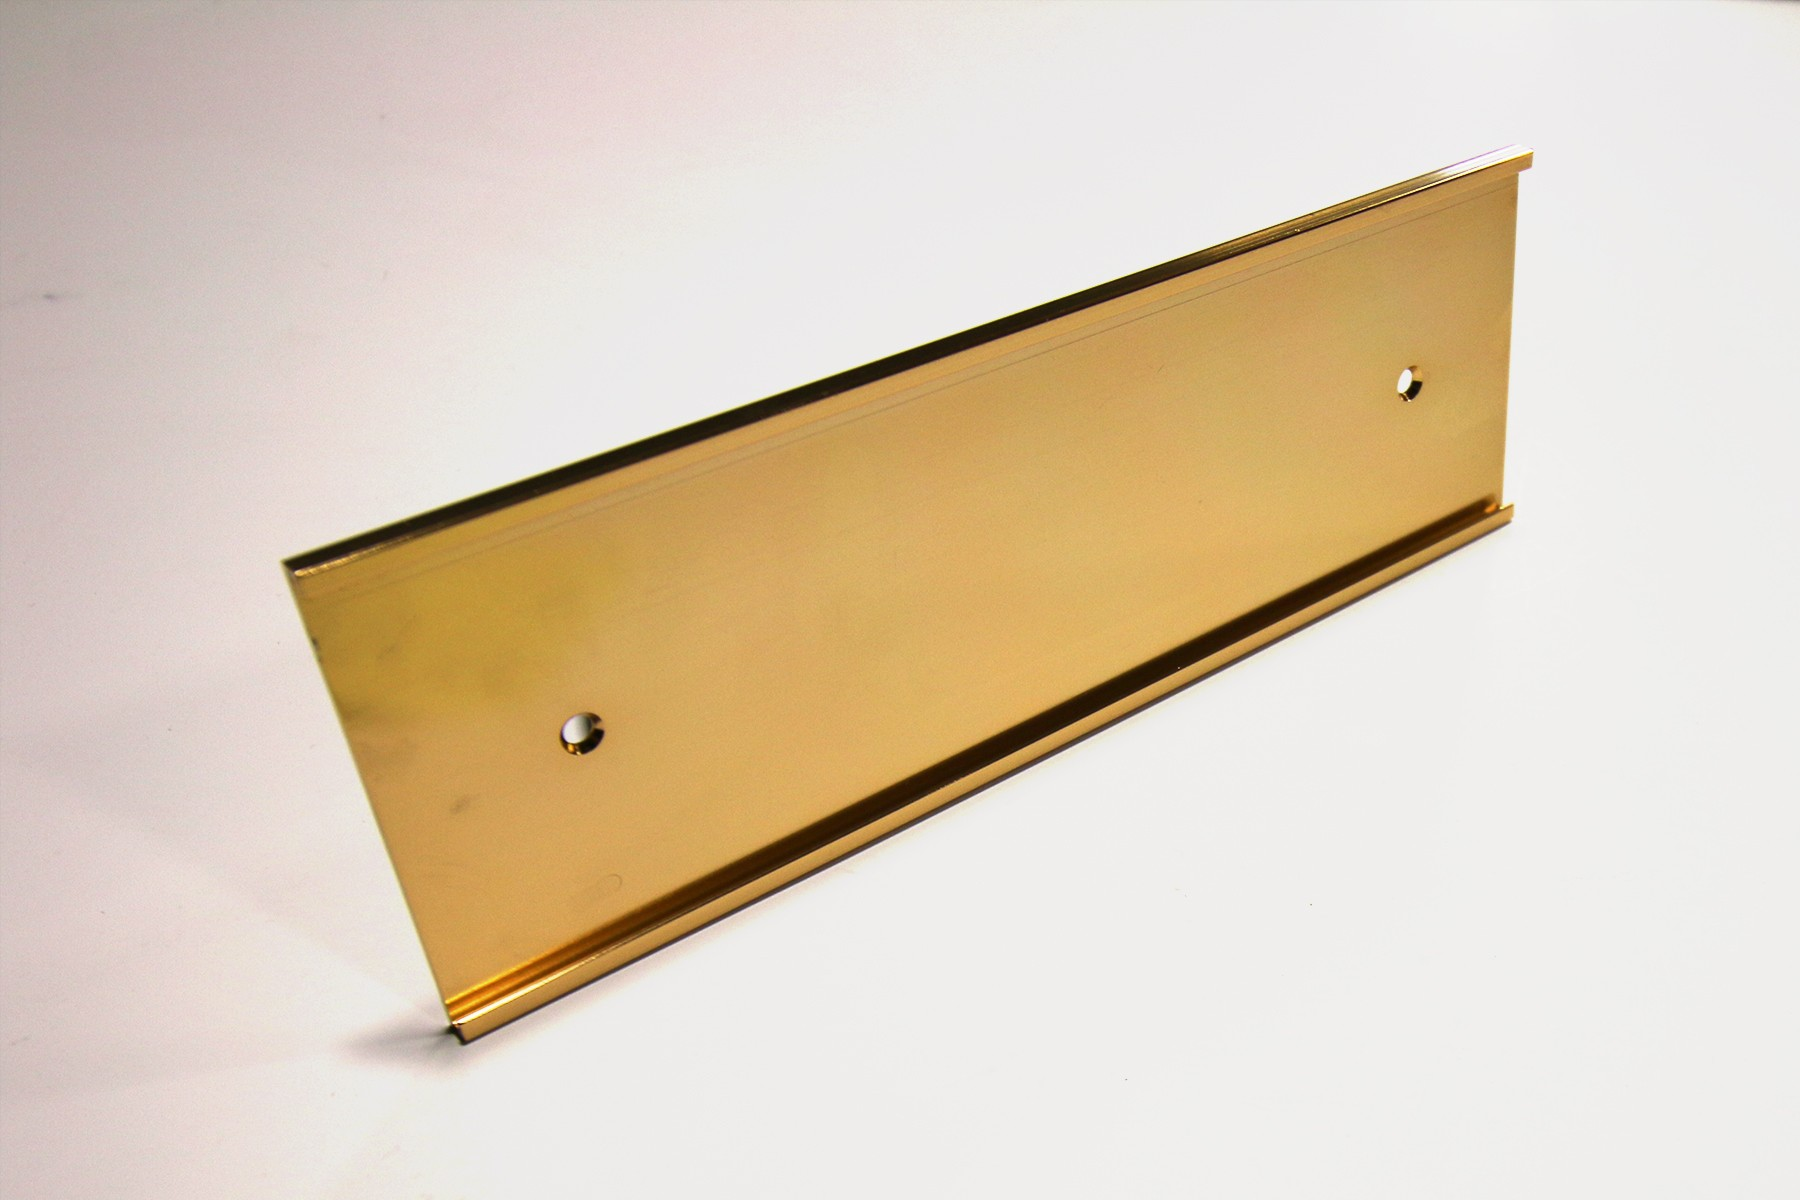 2-1/2 x 8 Wall Holder, Gold